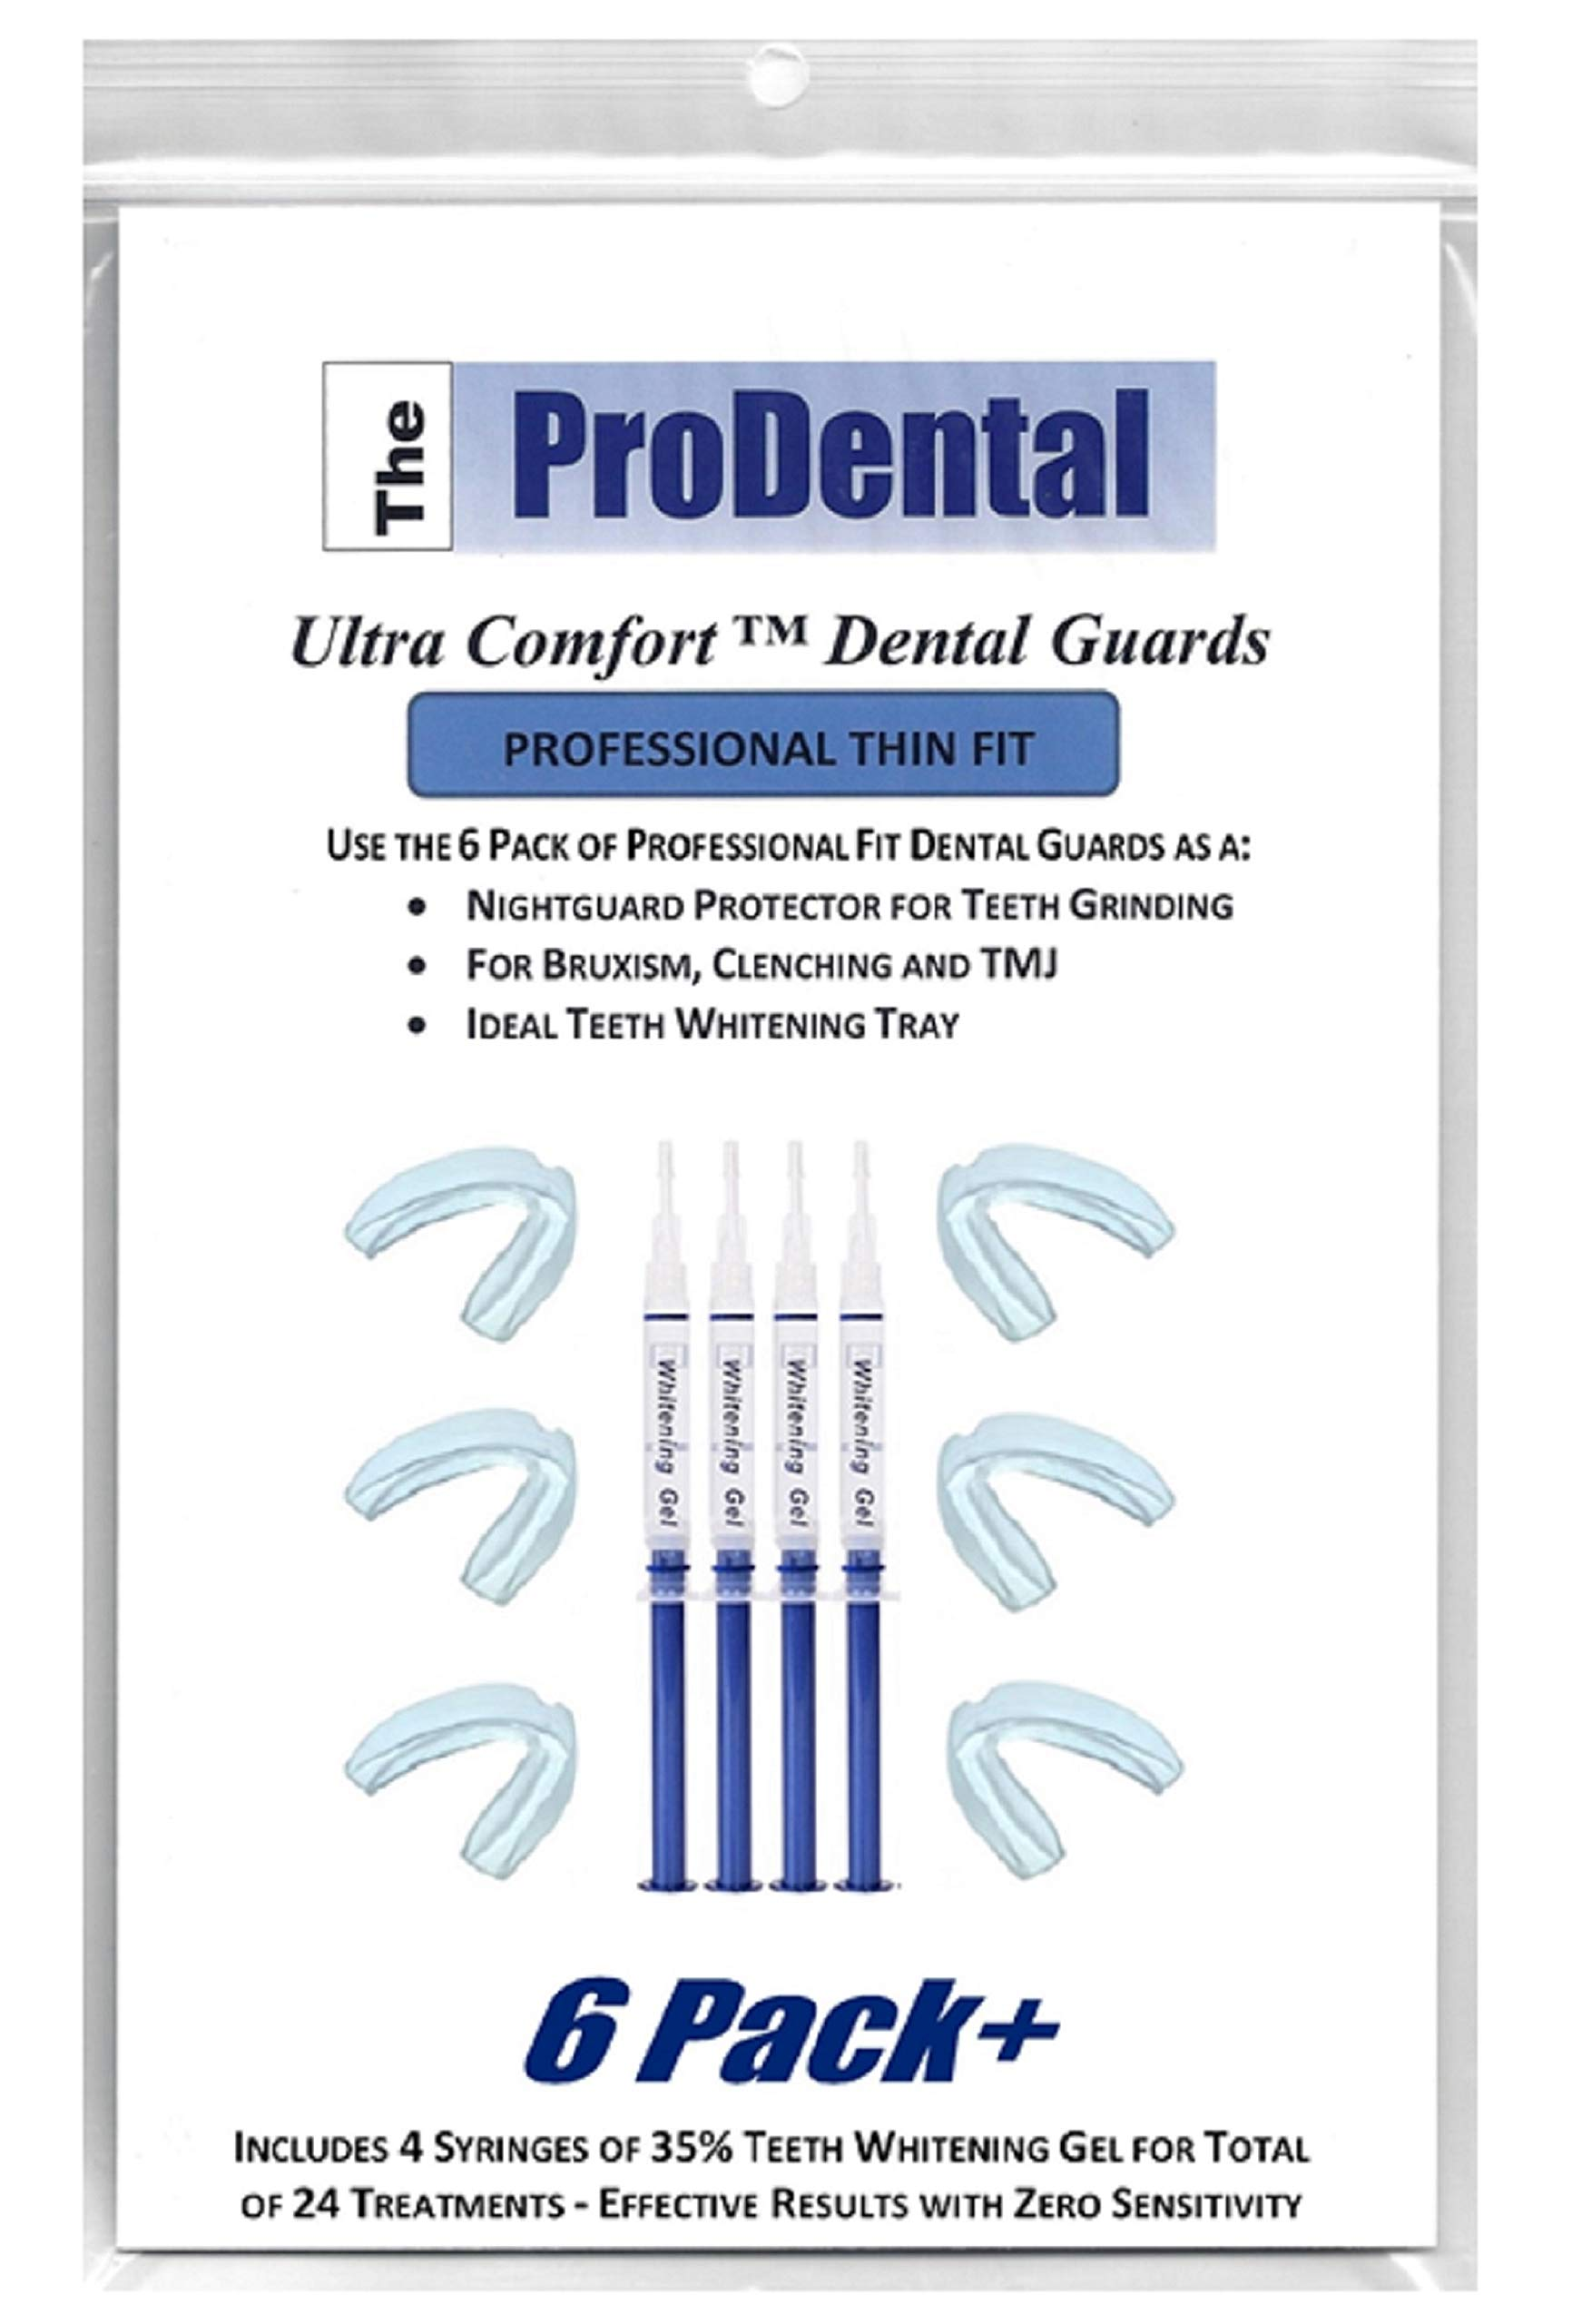 ProDental Thin & Trim Mouth Guard for Grinding Teeth - 6 Pack, USA Made | BONUS: Teeth Whitening Gel 4 Pack Included | Night Guard Stops Bruxism - Teeth Clenching | Customizable Dental Guard - No BPA by ProDental